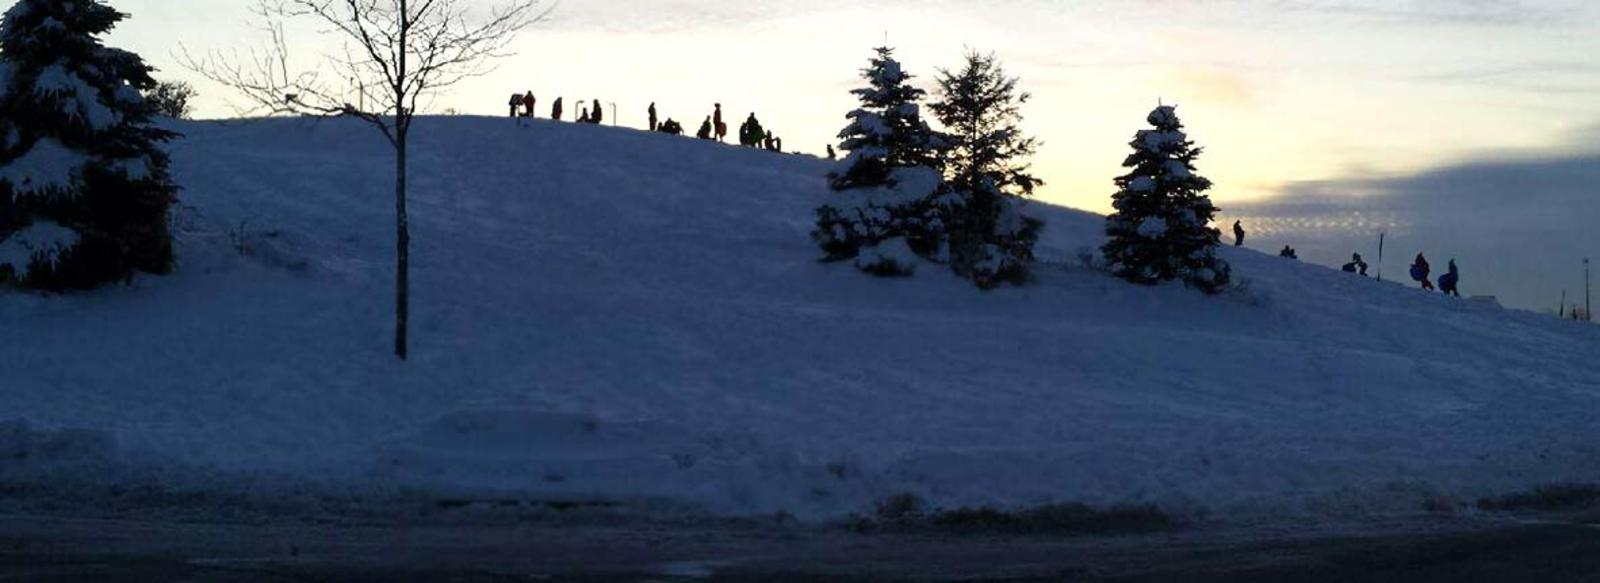 Sledding-Northwest-Indiana-Centennial-Park-Munster